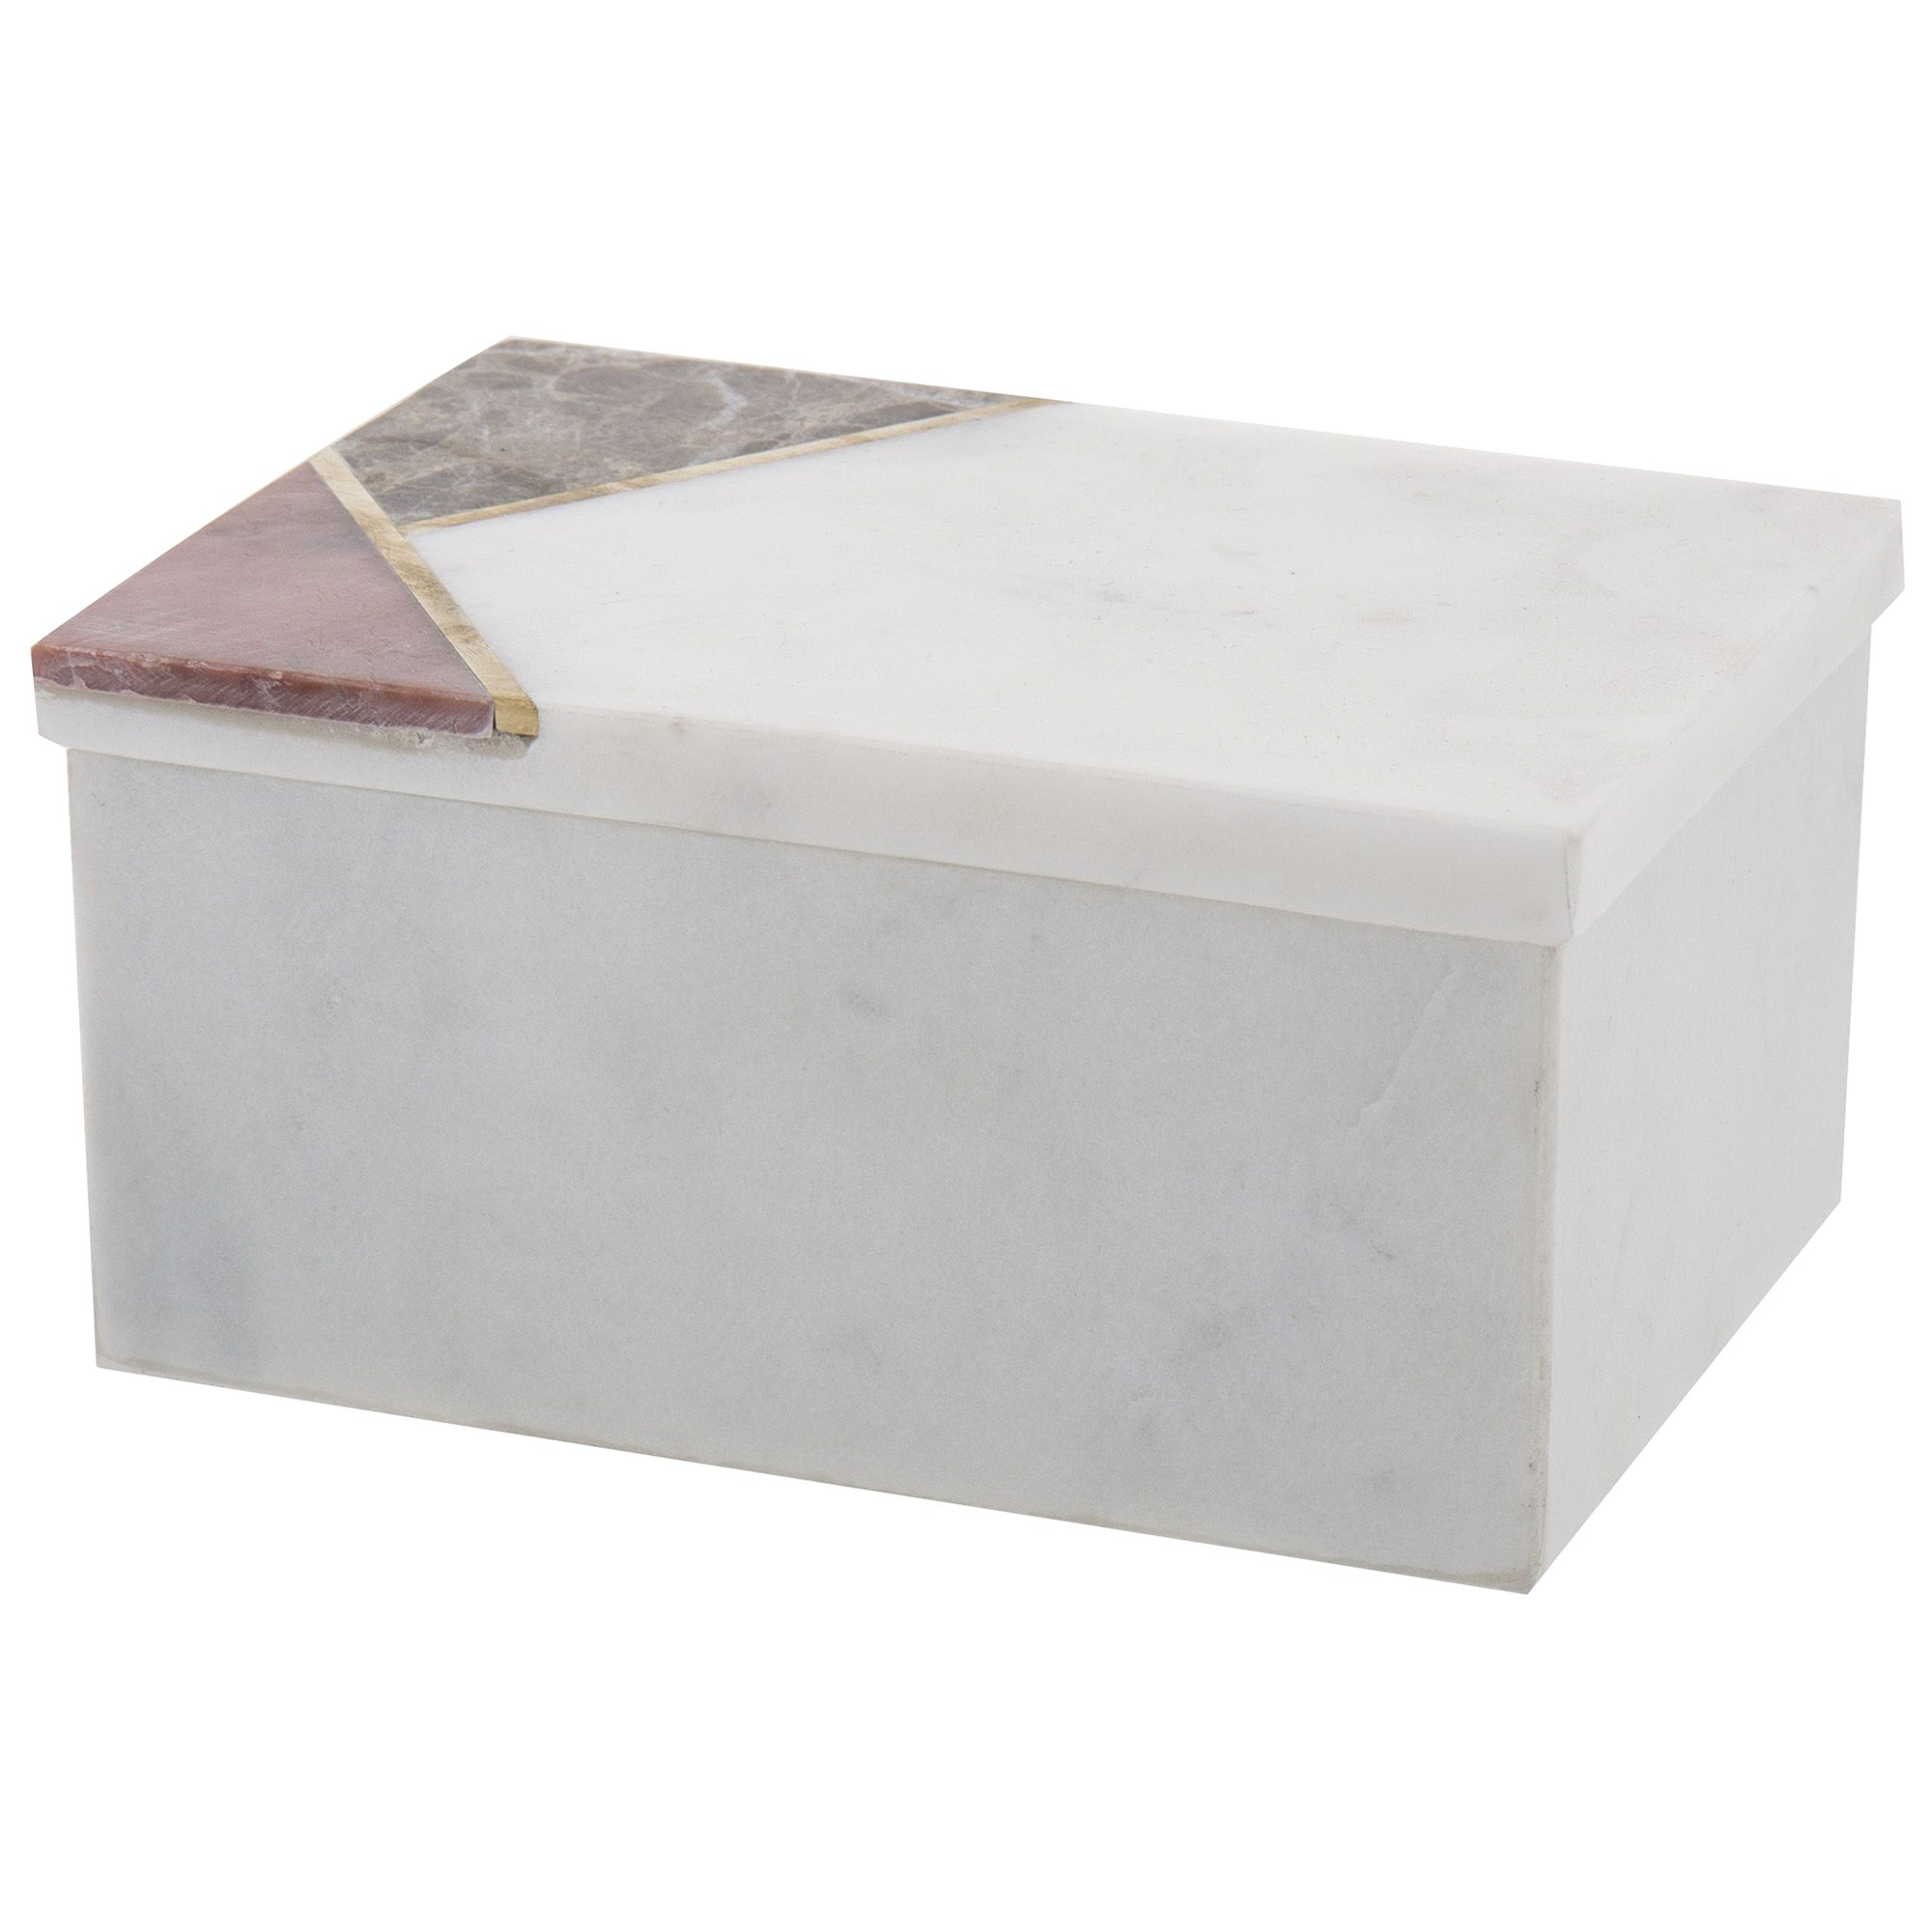 Levatina Marble Decor Box, Large